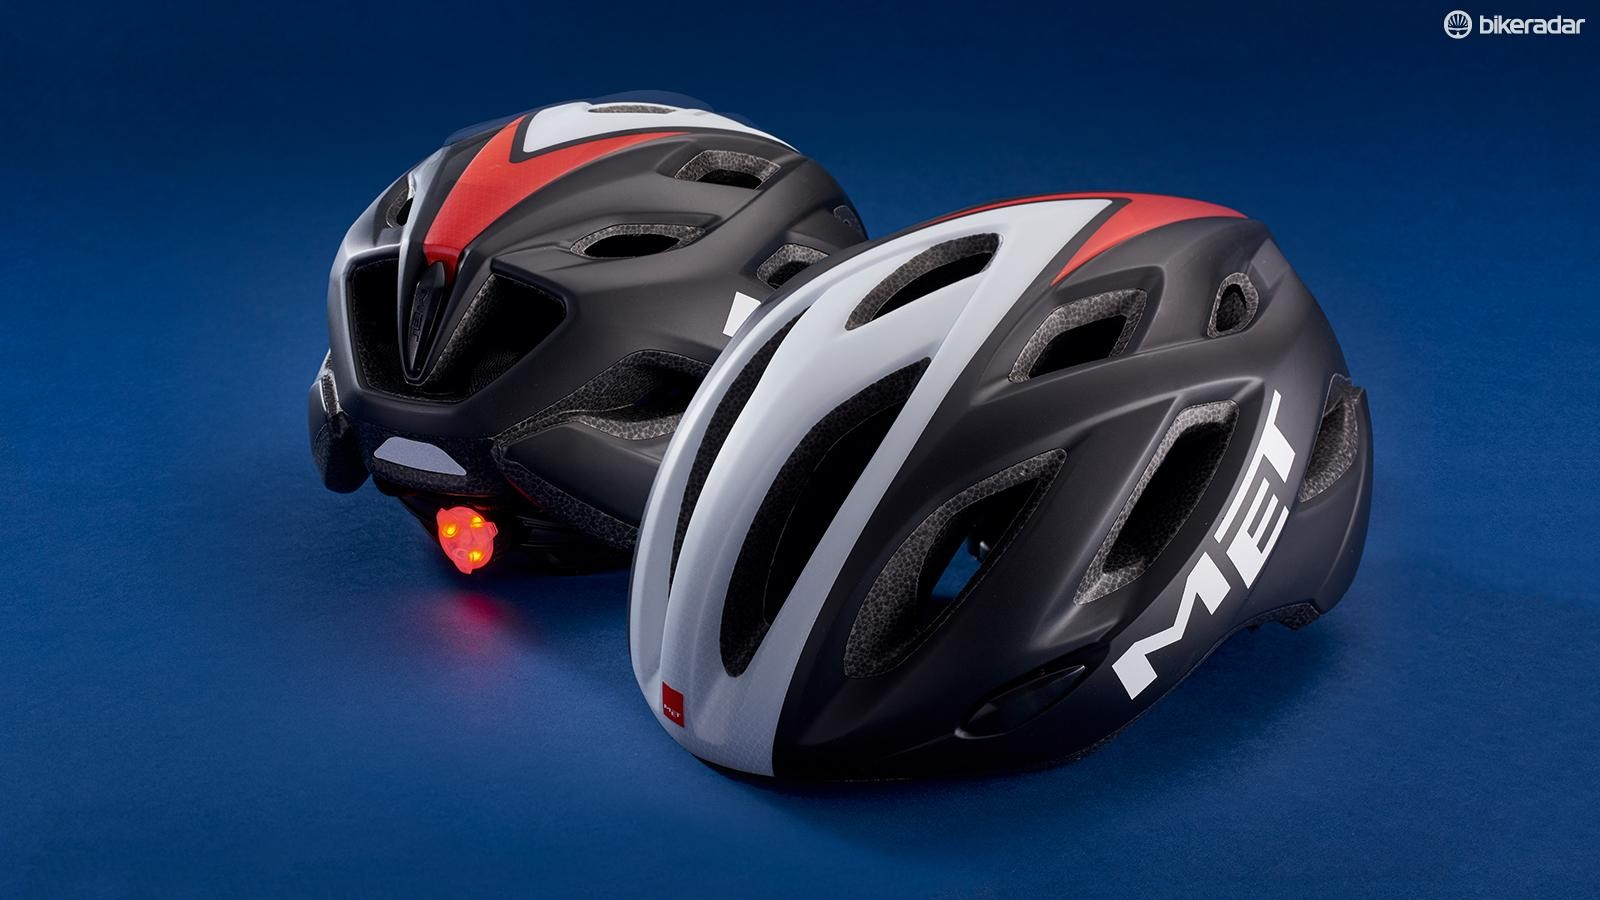 The Idolo is MET's entry-level road lid